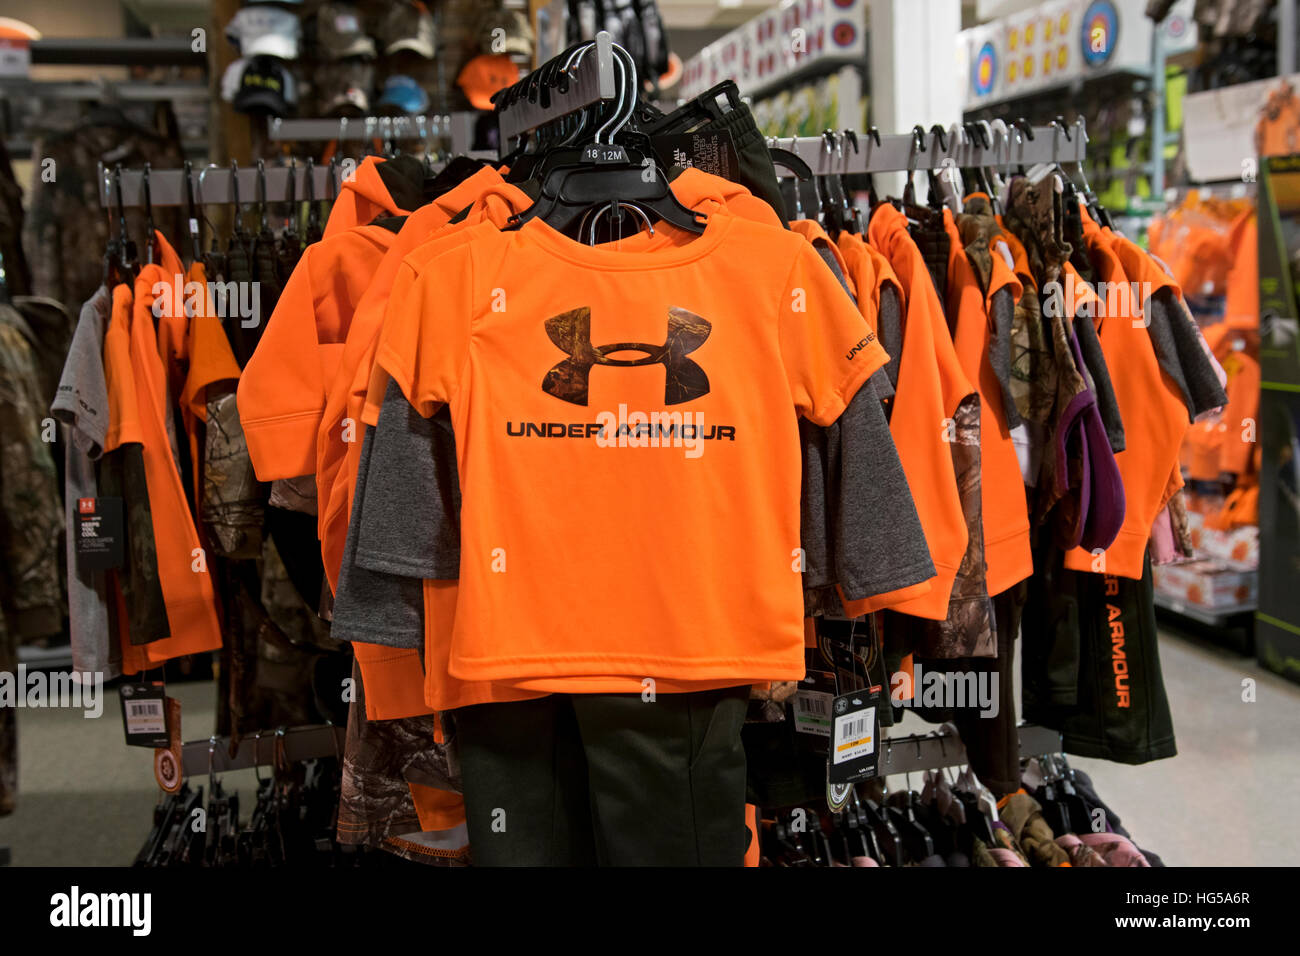 2be4d24e2fd Under Armour hunting clothing for sale at Dick s Sporting Goods at  Roosevelt Field shopping center